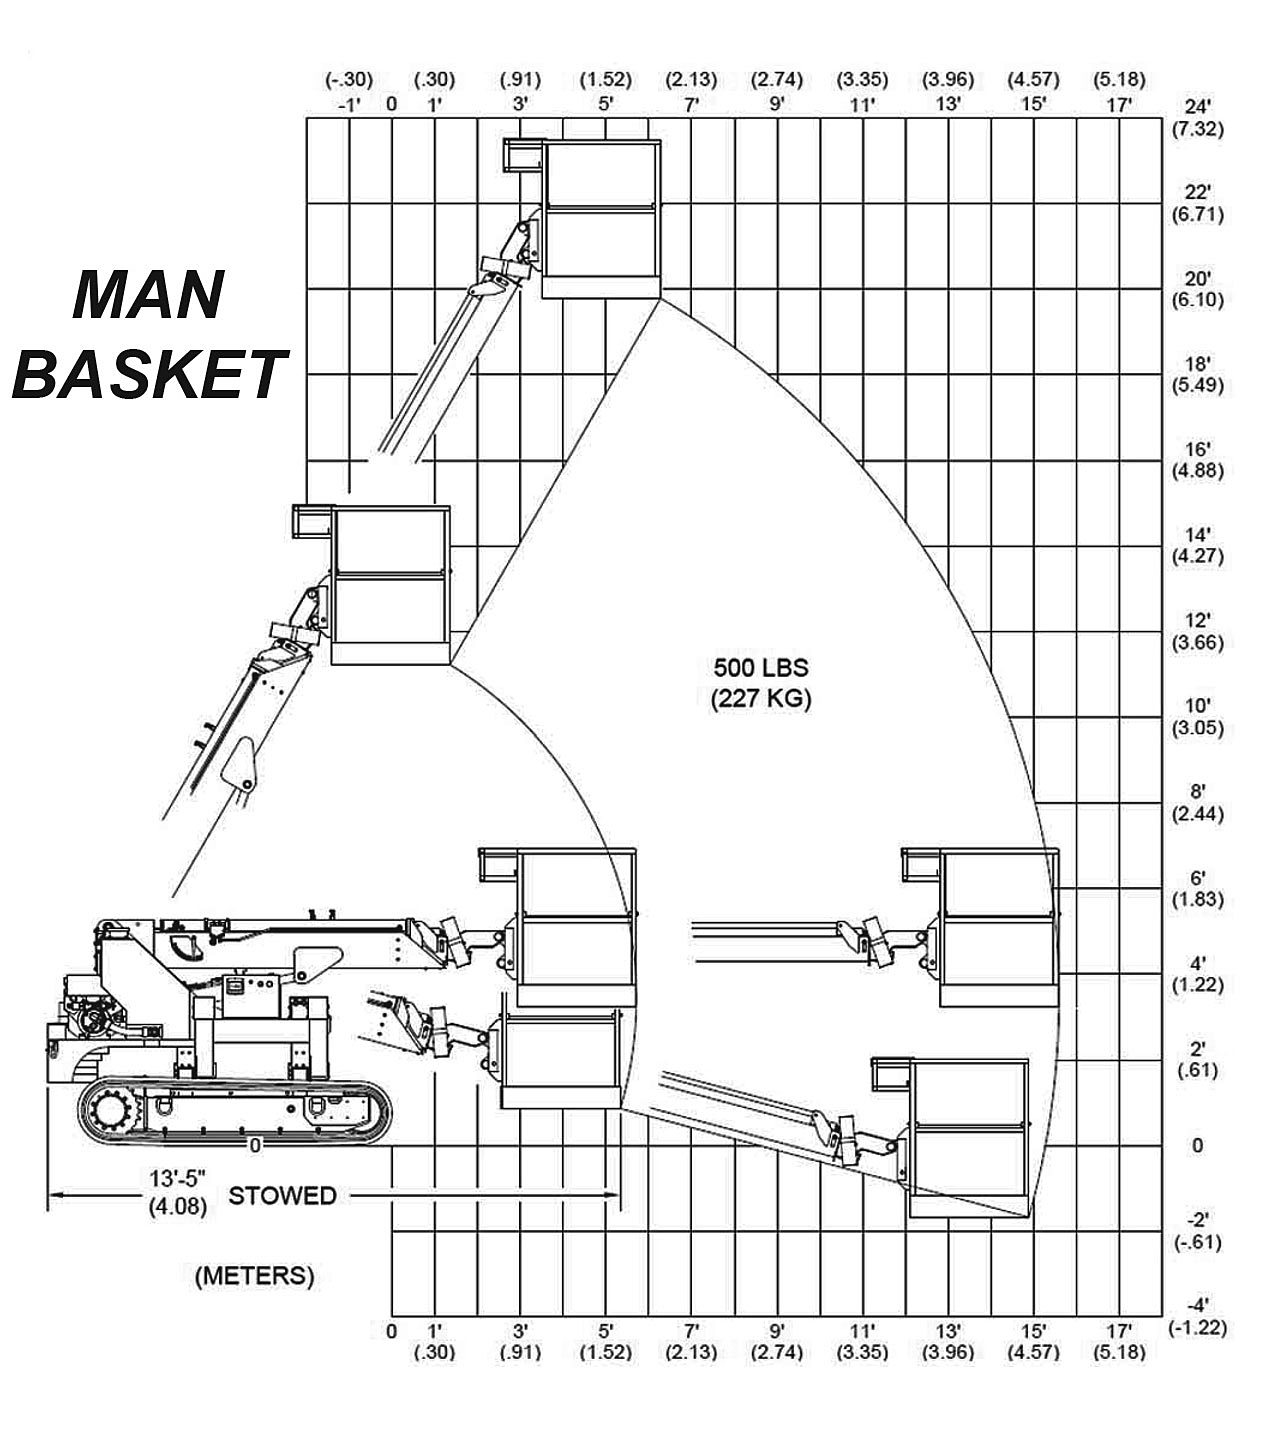 Brandon Trax Man Basket Load Capacity